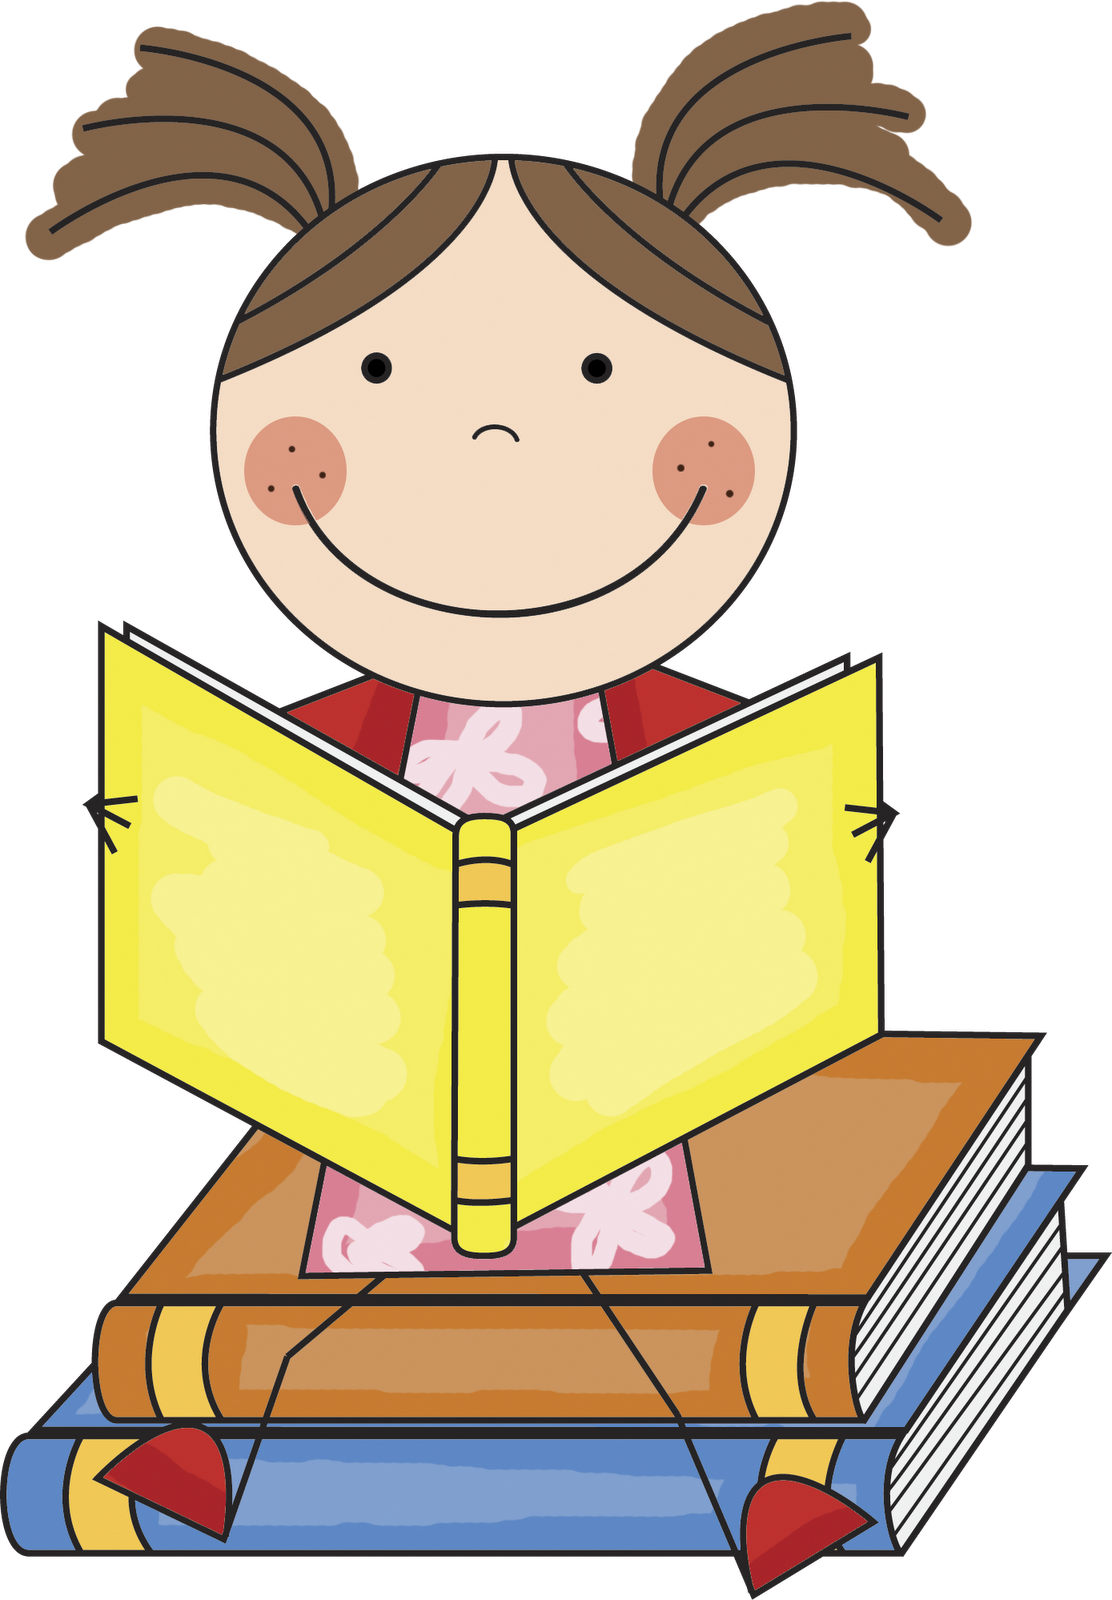 Children s library clipart clip freeuse download Free Children Reading Books Images, Download Free Clip Art, Free ... clip freeuse download